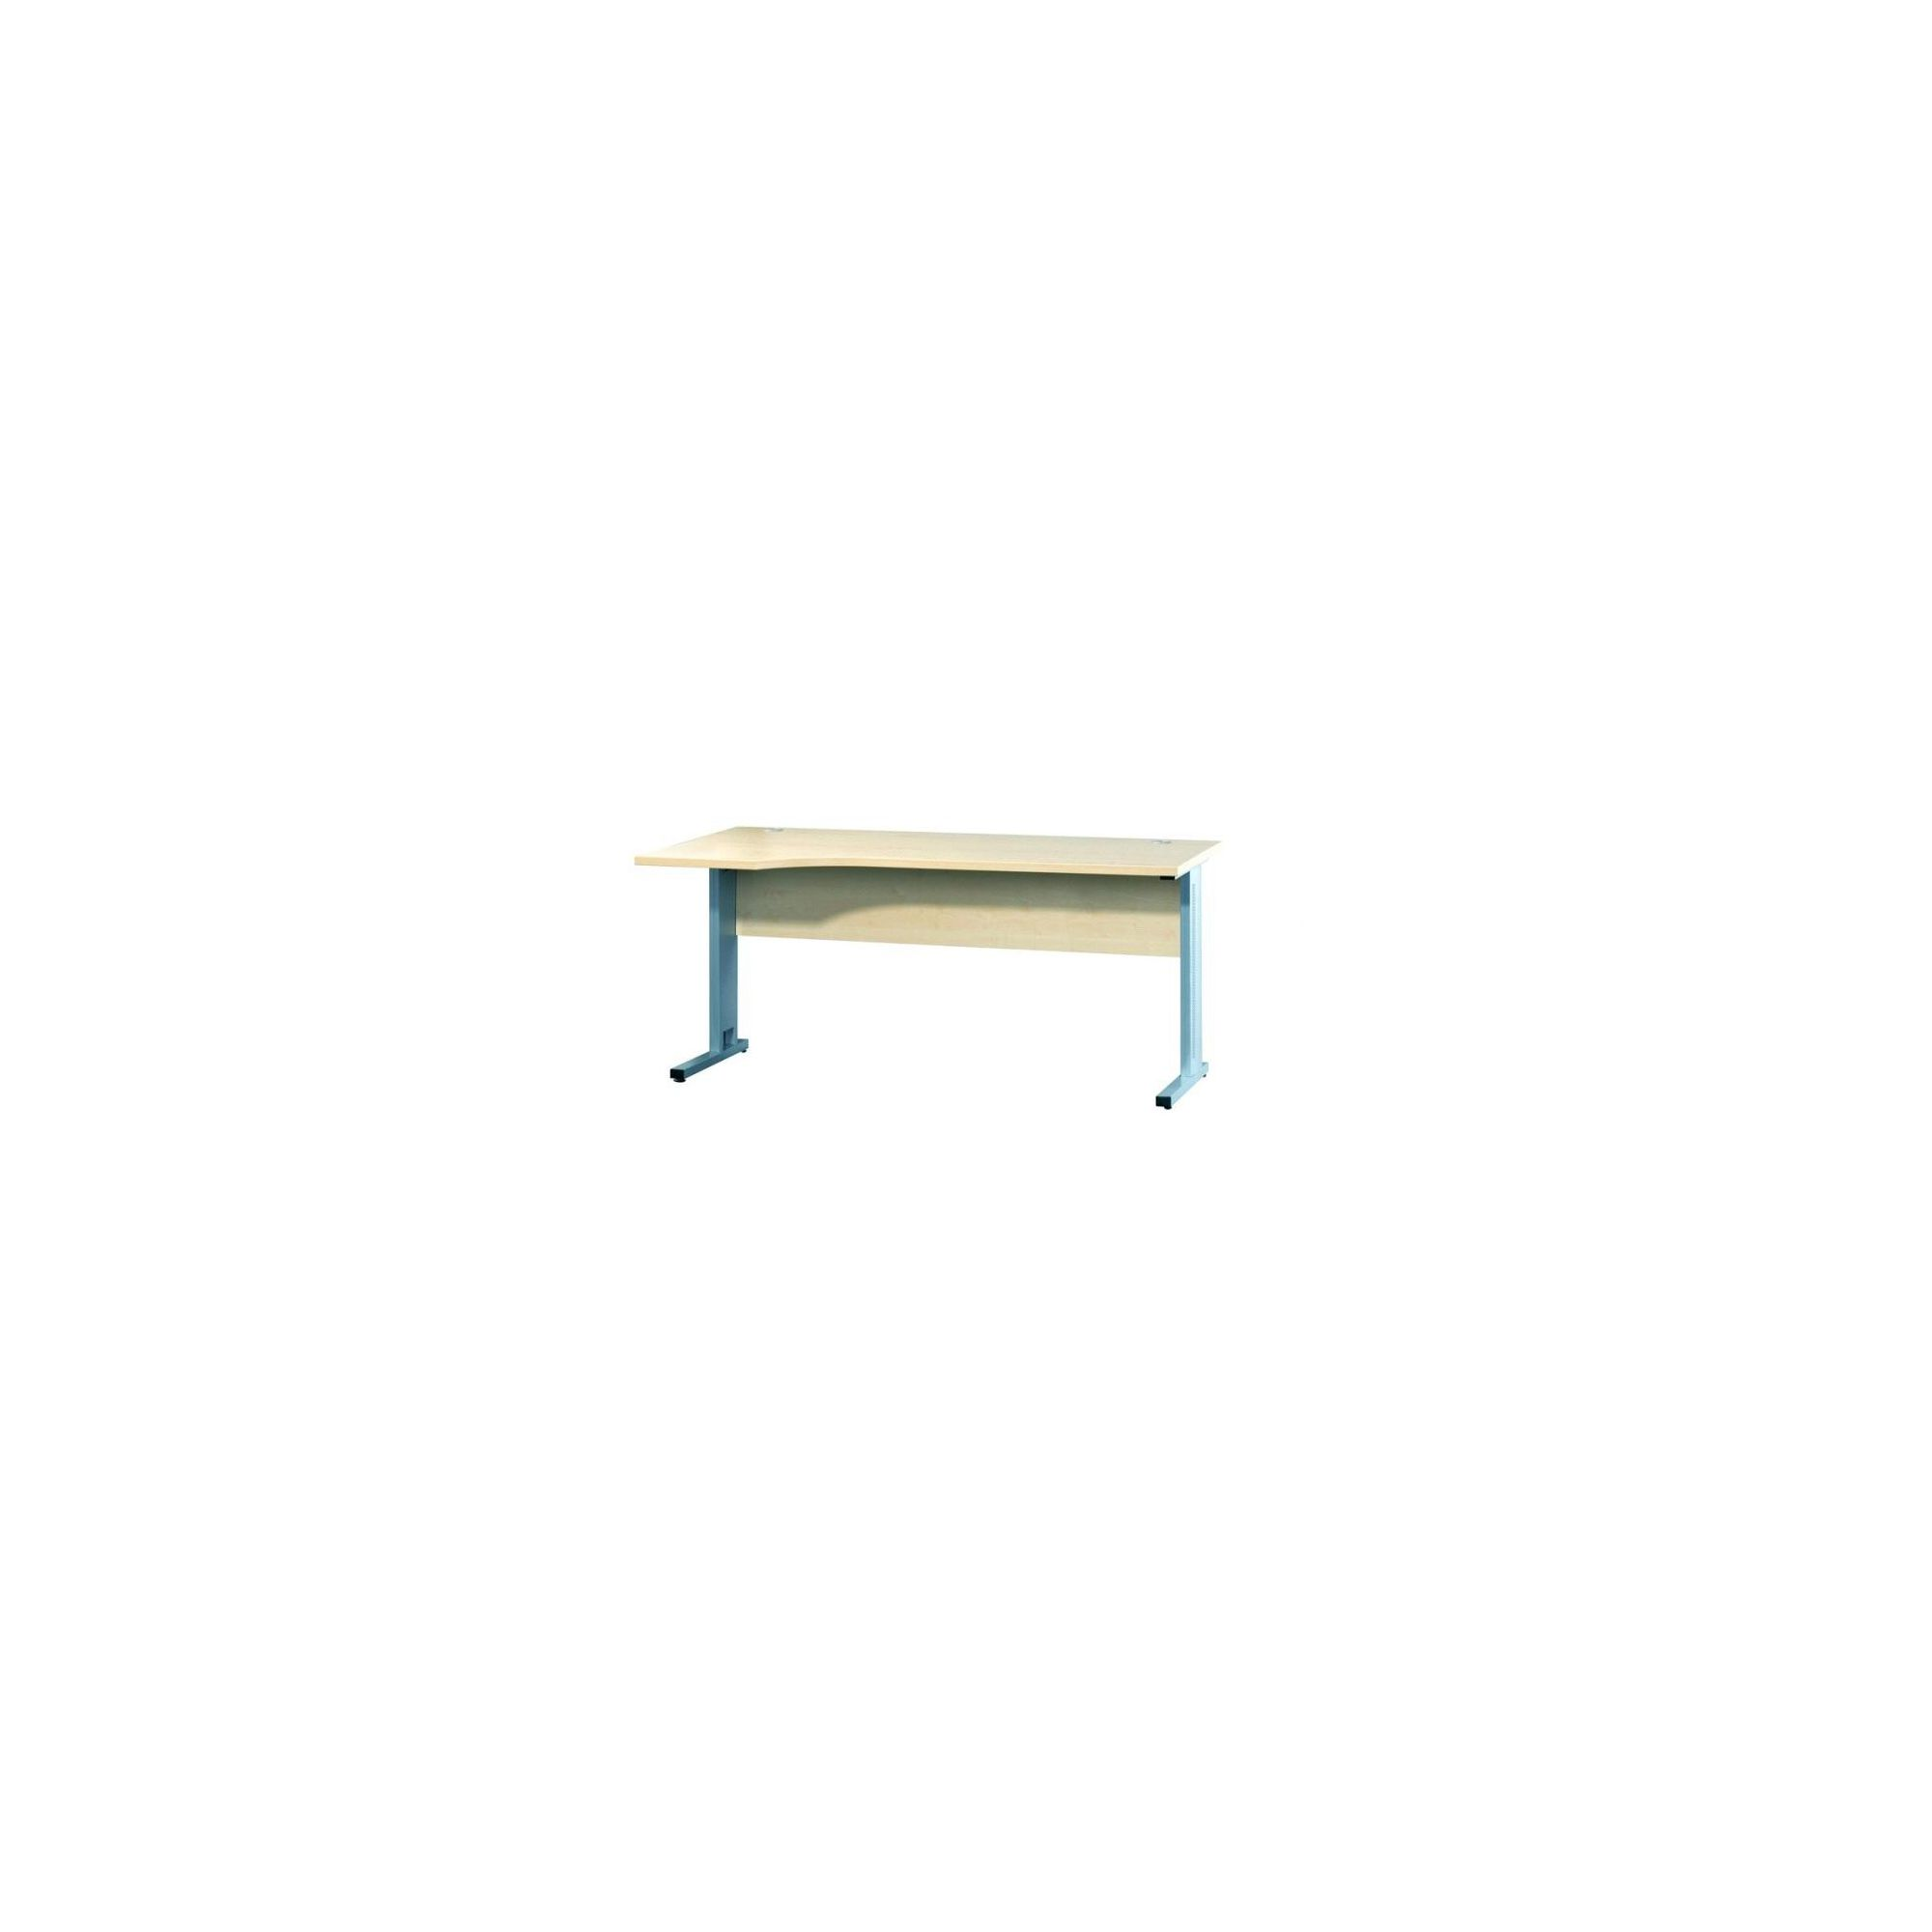 Bush Techno Speed R/H Cantilever Framed Ergonomic Desk in Beech at Tesco Direct